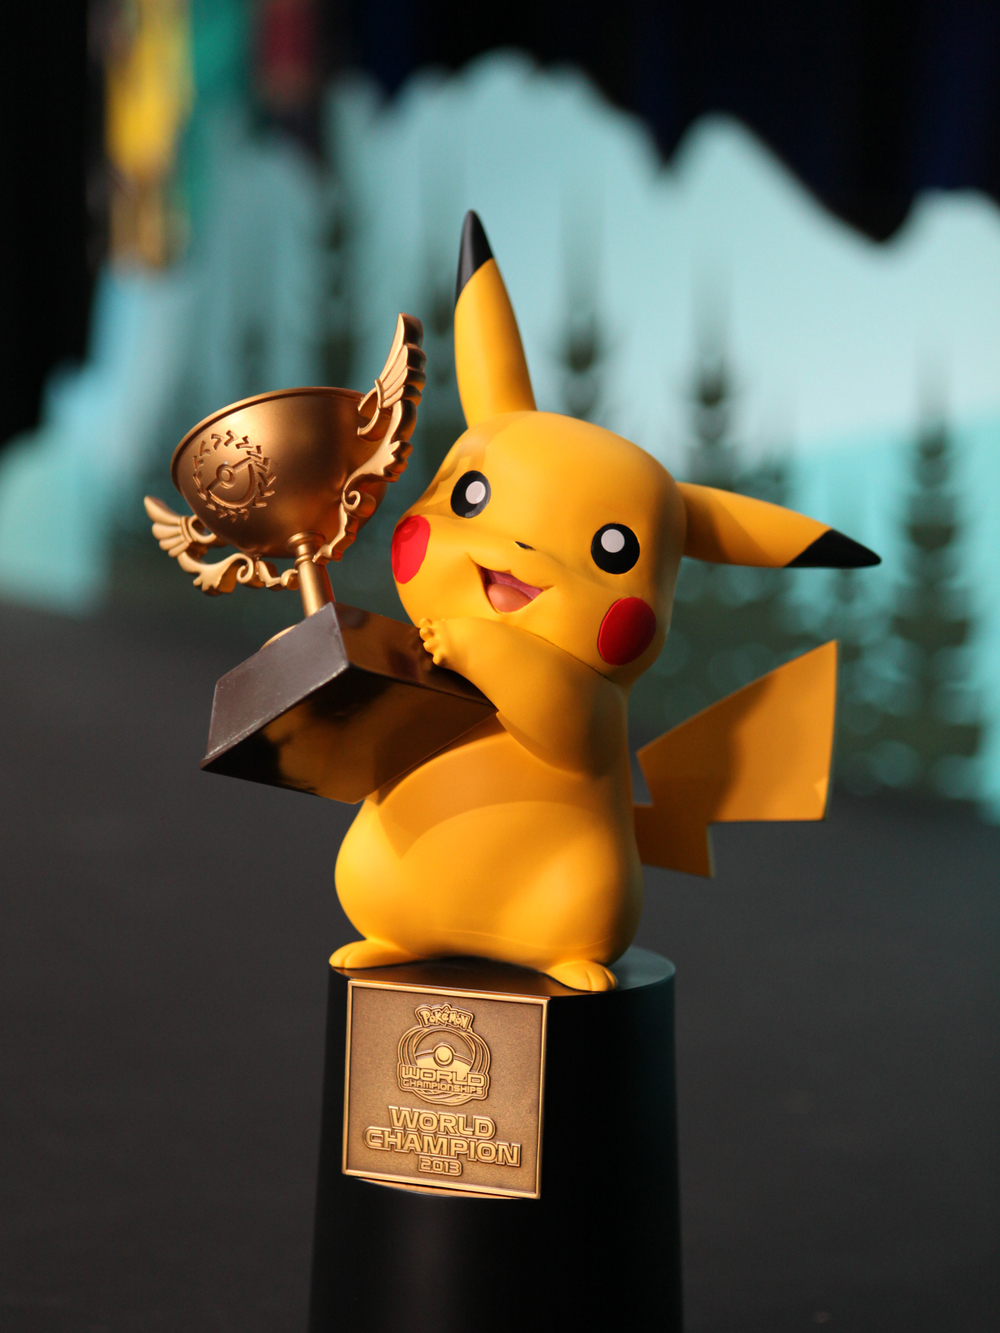 Pokemon World Champion Trophy.jpg